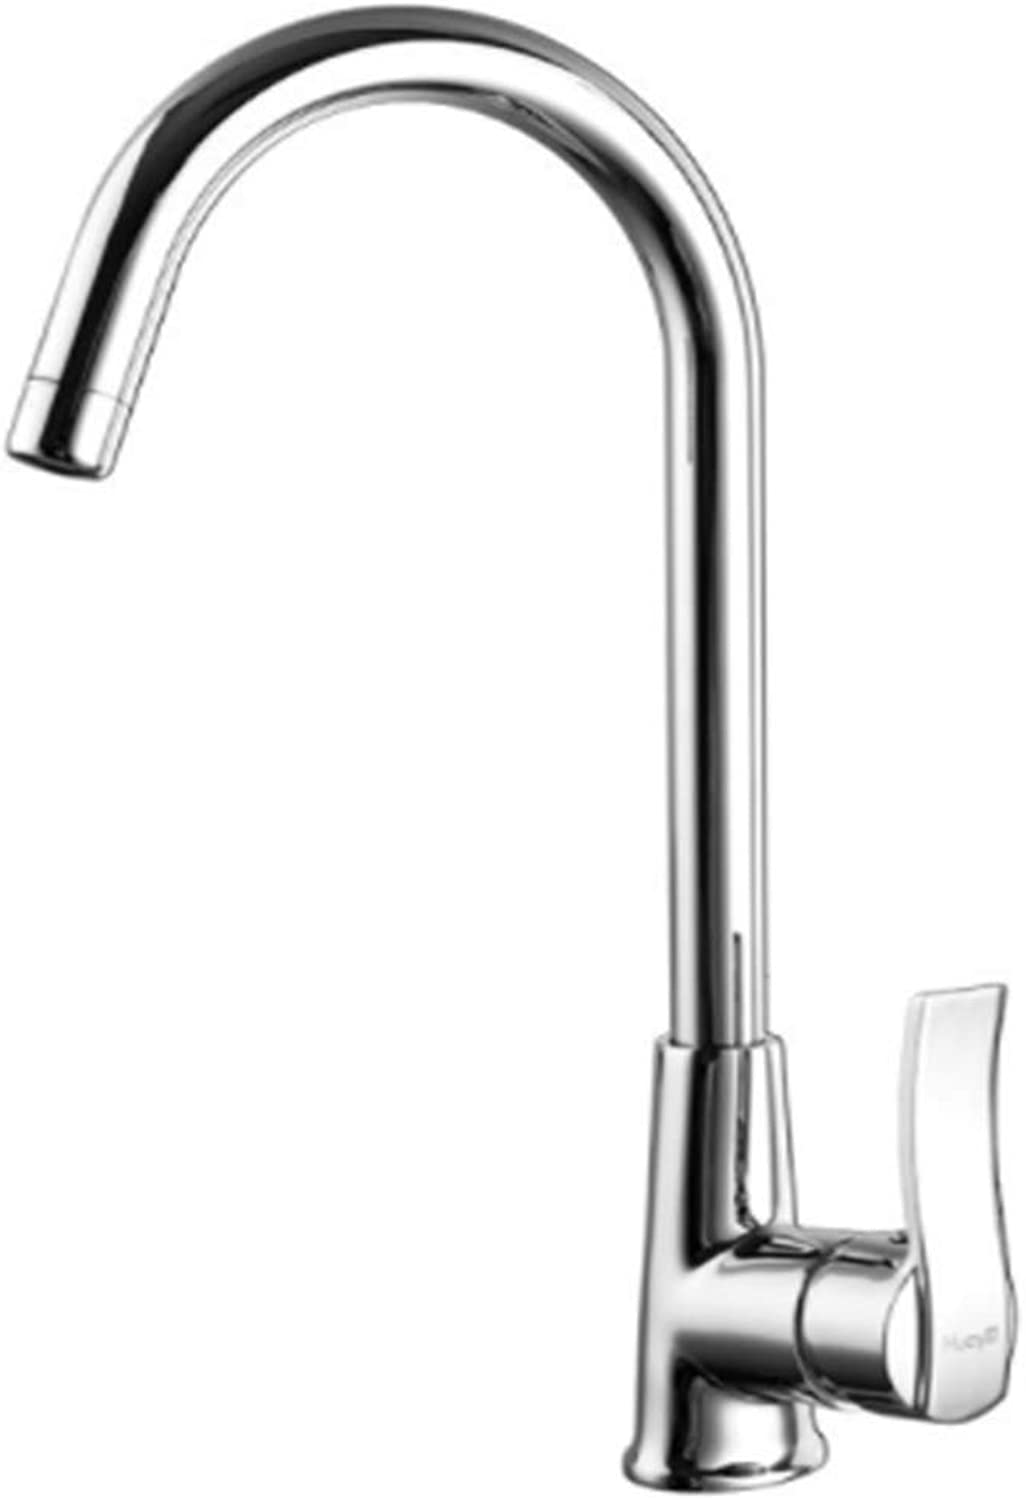 Kitchen Taps Faucet Modern Kitchen Sink Taps Stainless Steelfine Copper Faucet, Single Kitchen Hot Water Faucet.